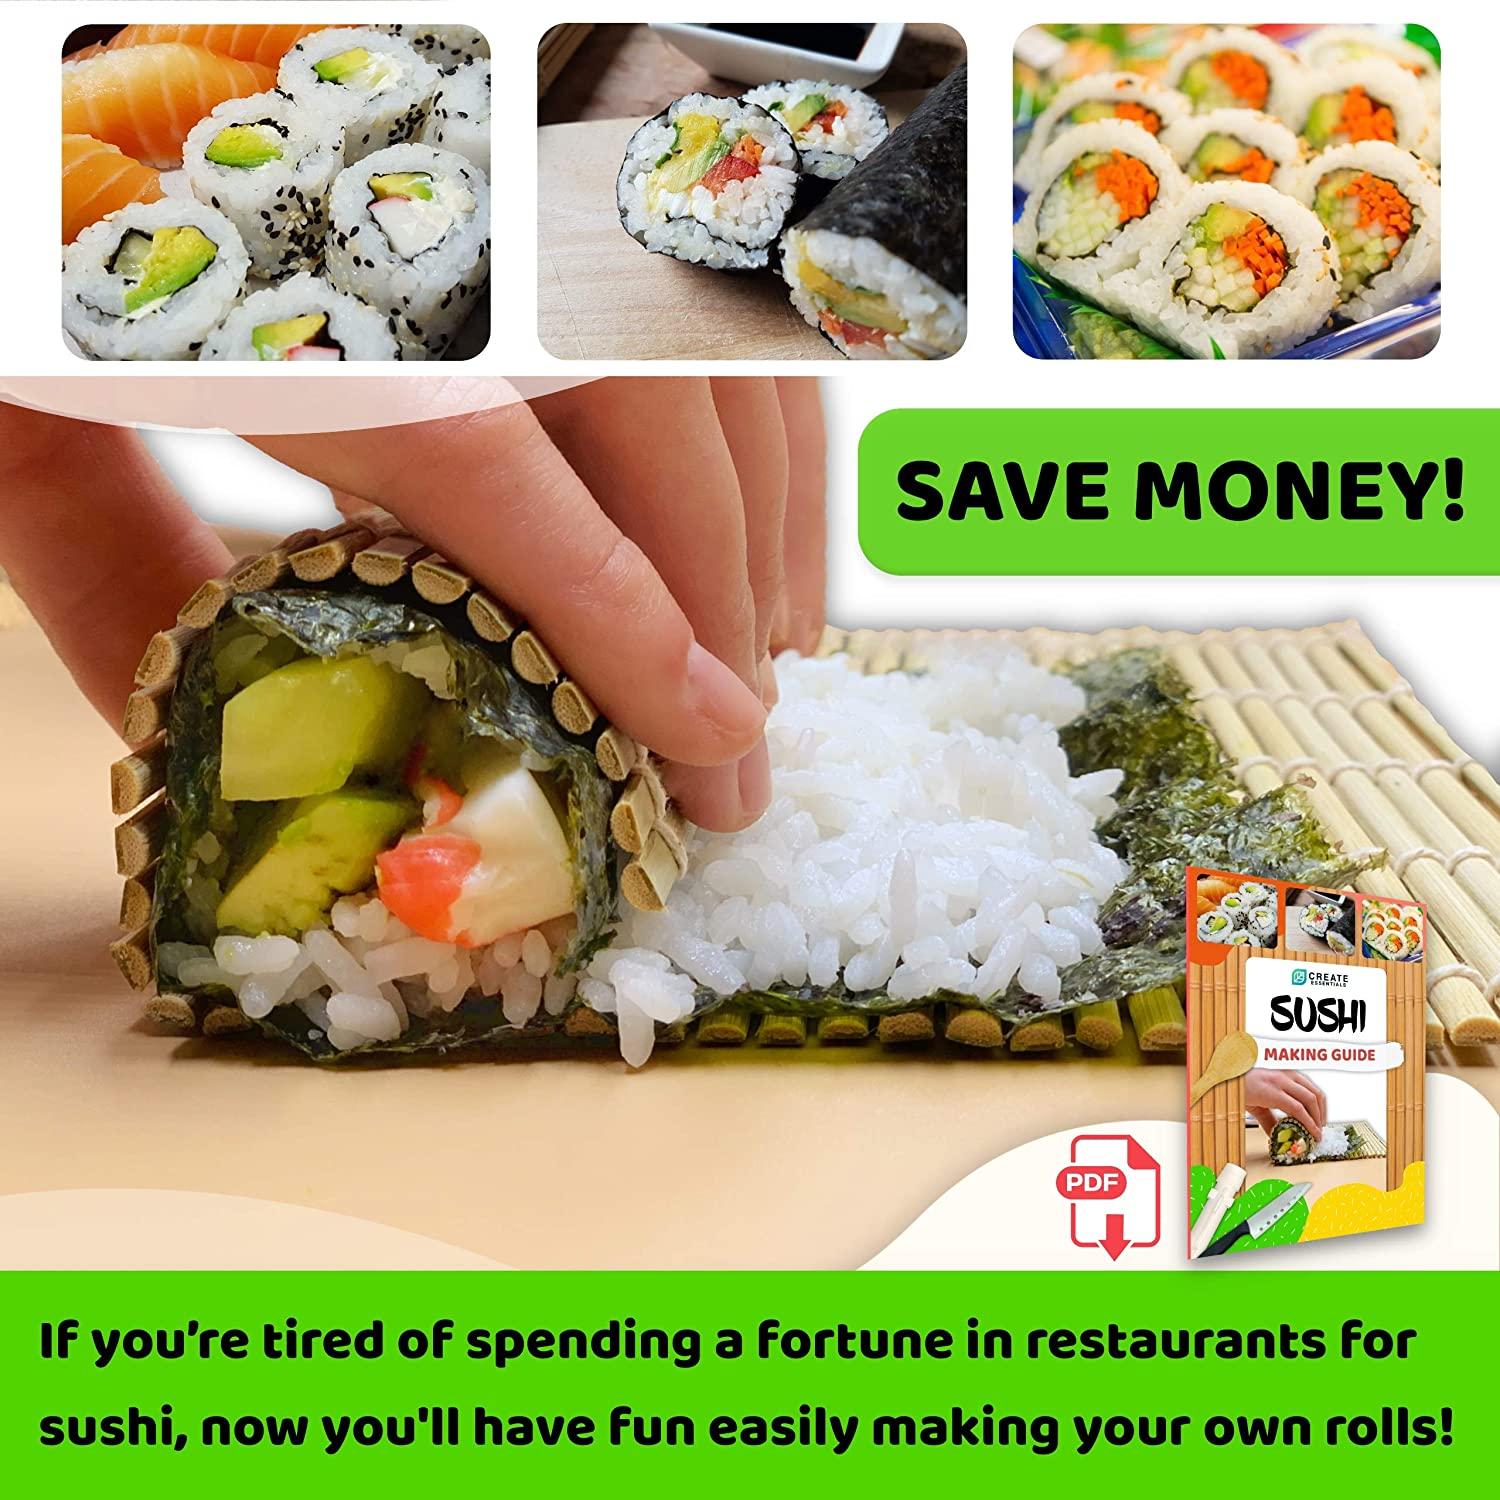 Sushi Making Kit All In One Sushi Roll Bazooka Maker with Restaurant Grade Rolling Mats and Roller for Sushi Parties at home Sushi Tools Set with Beginners Guide /& Recipes Bamboo Sushi Mat